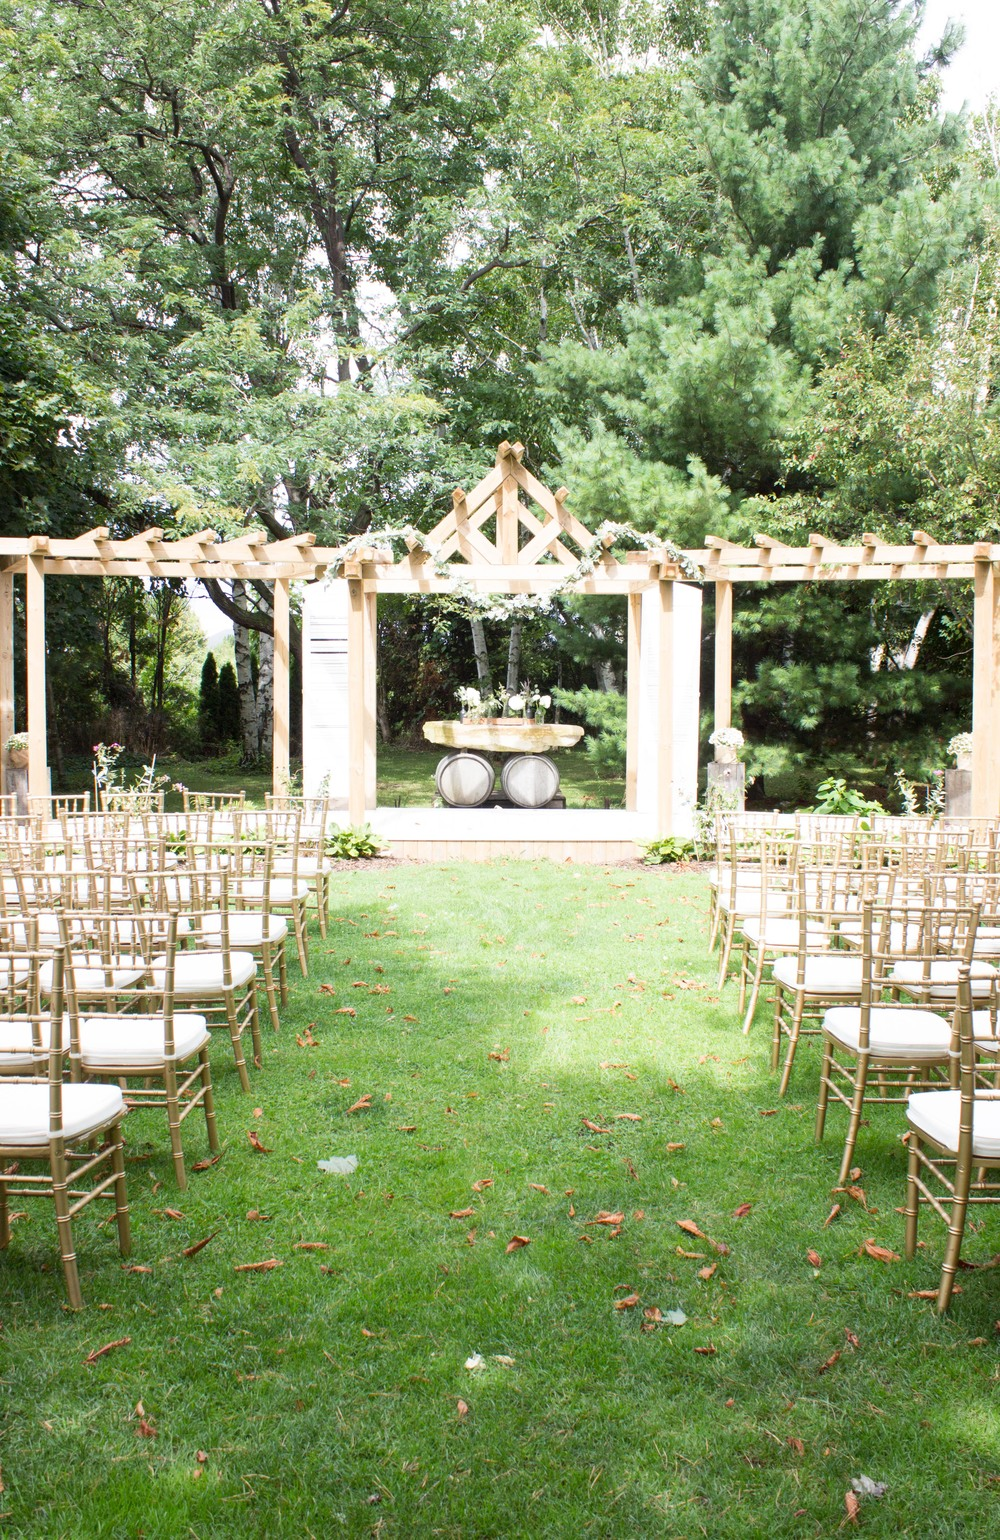 The gorgeous outdoor ceremony garden.